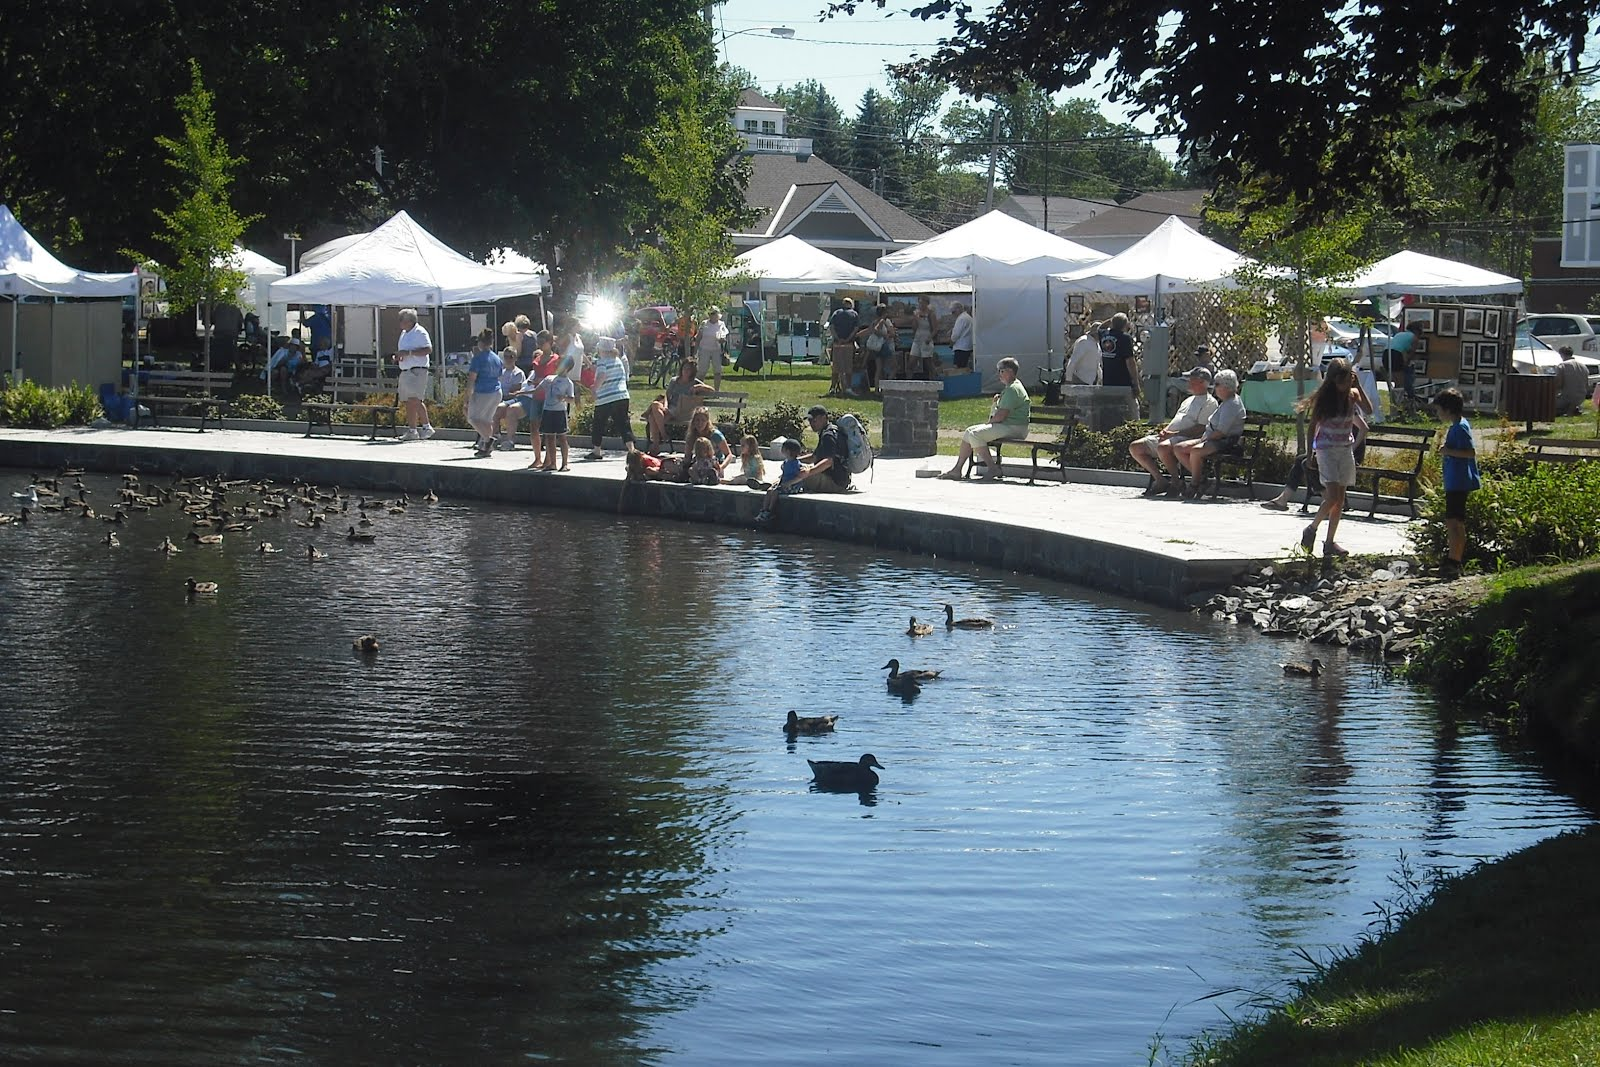 2014, August 8, South Portland Art in the Park, 9-4